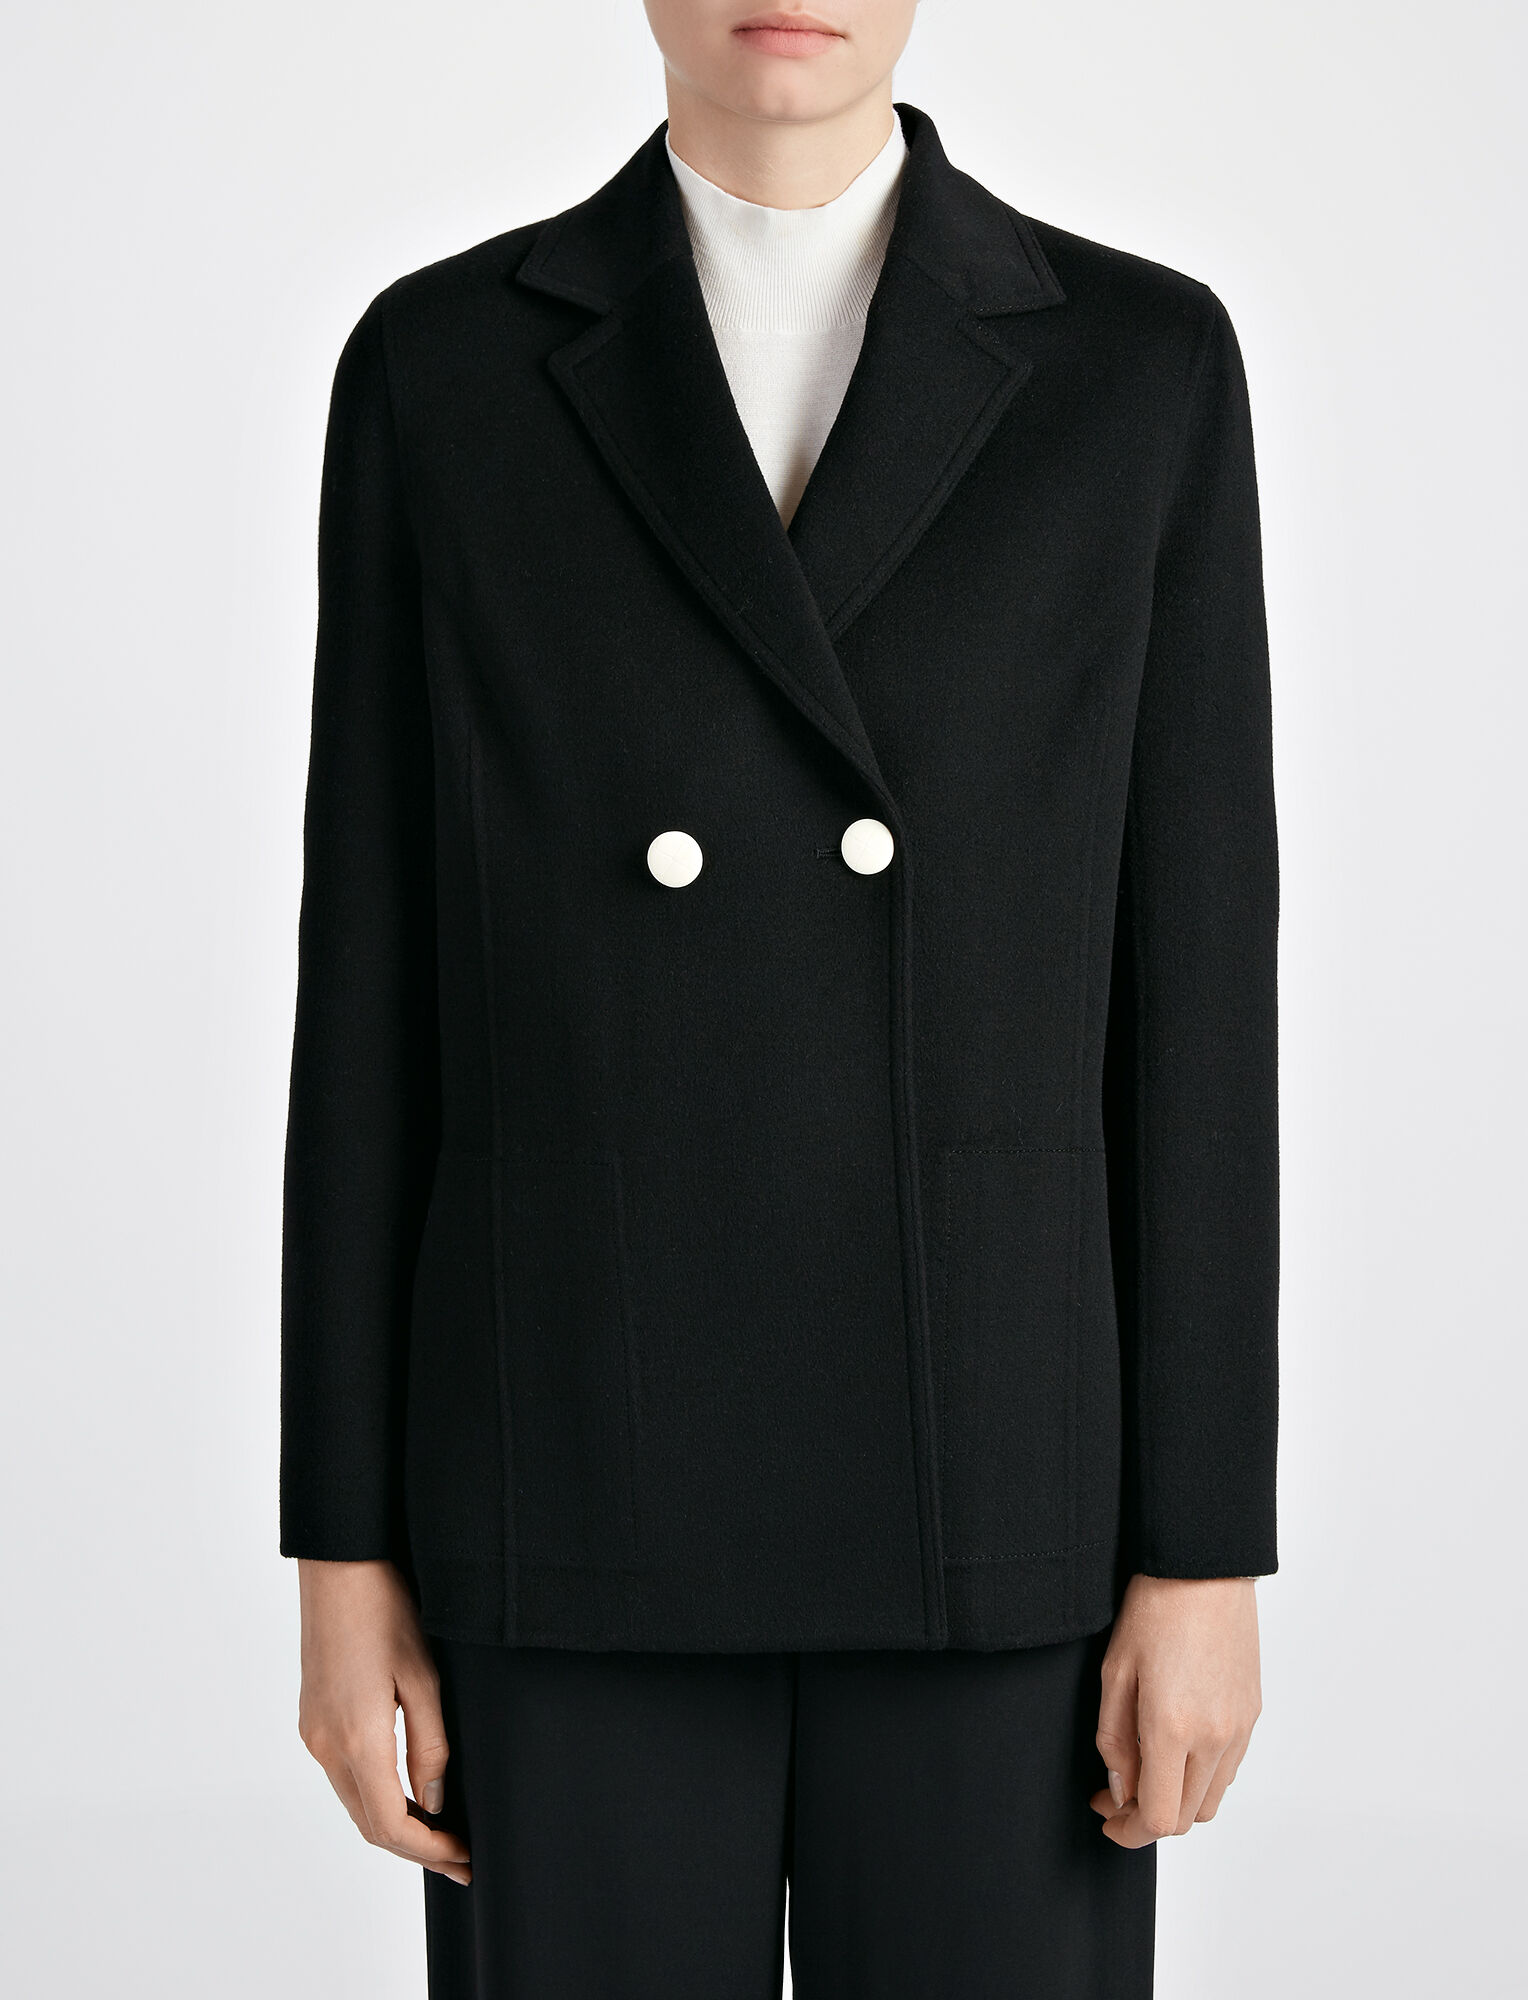 Joseph, Light Double Cashmere Brest Jacket, in BLACK